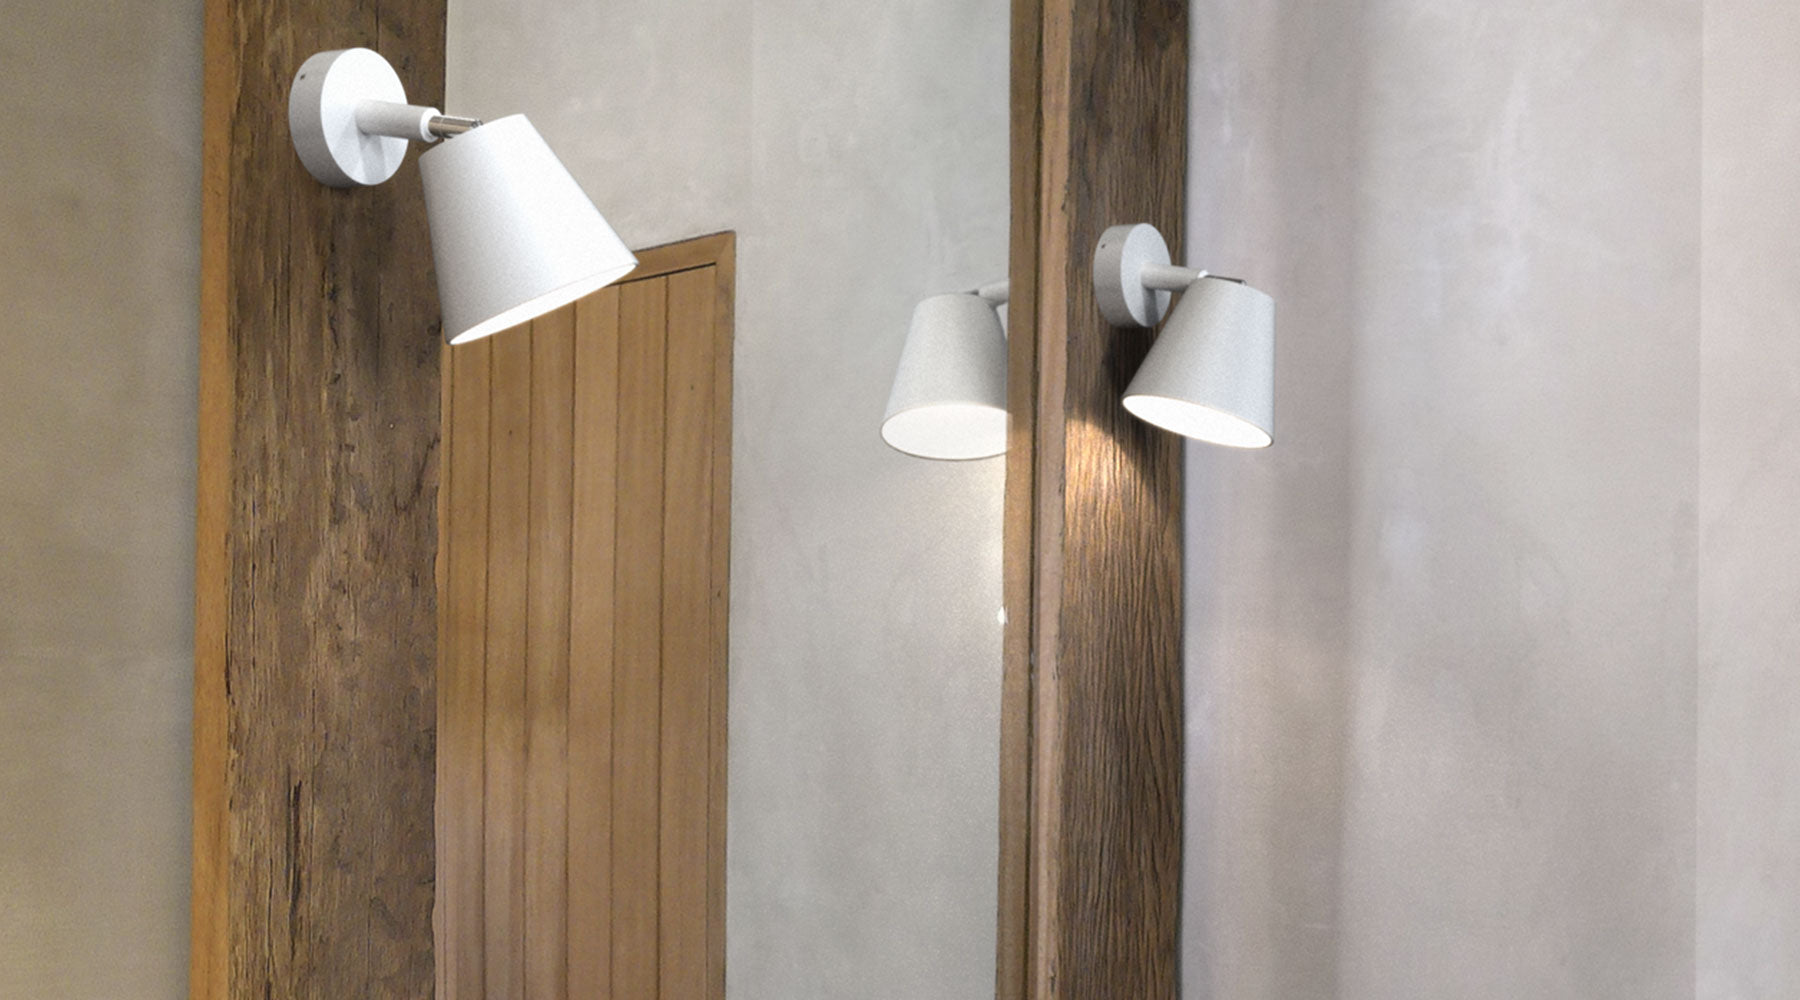 Midi Shade Bathroom Wall Lamp